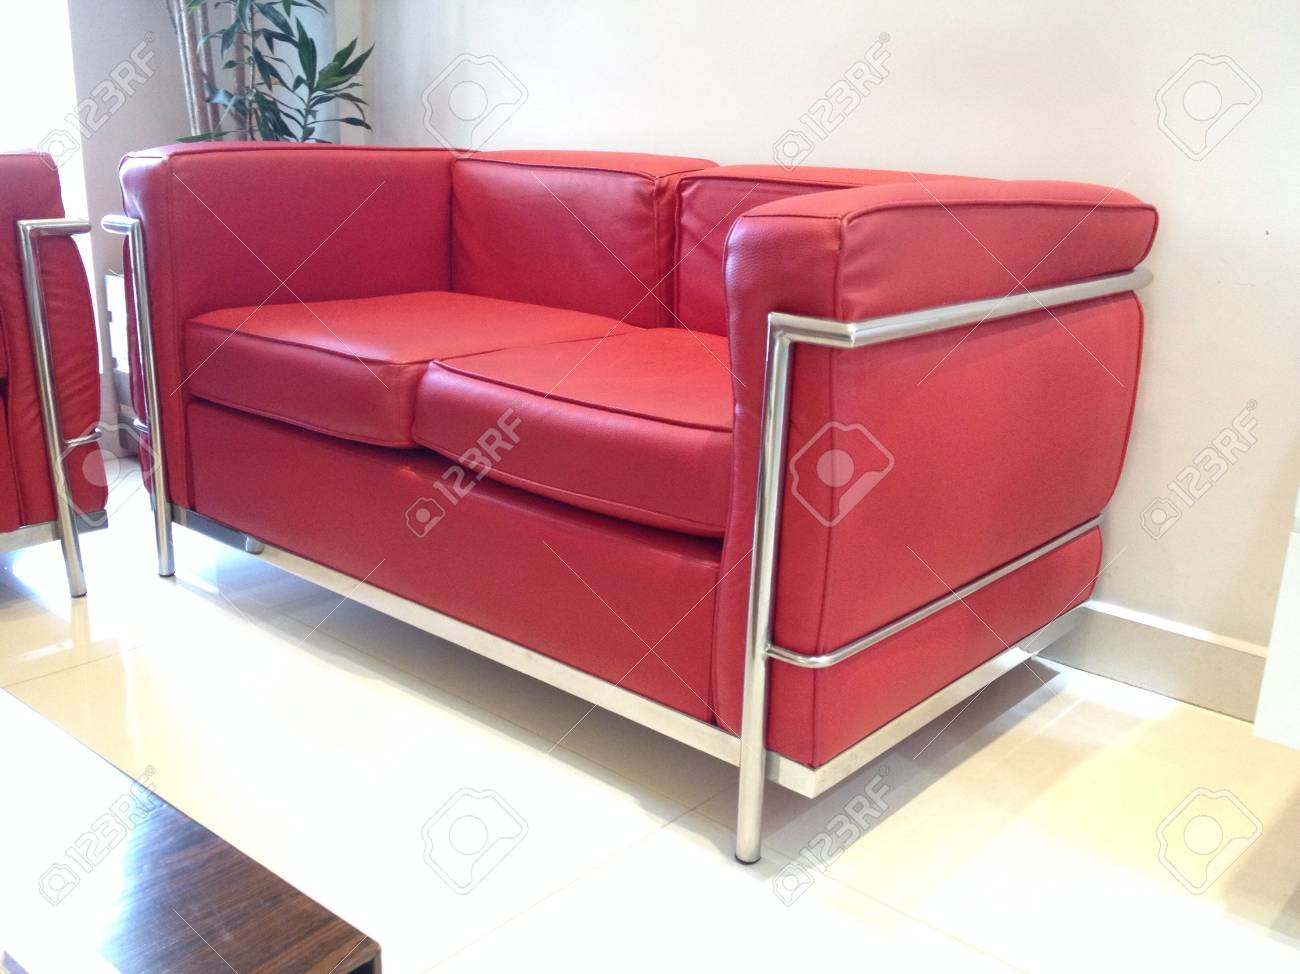 Sofa Couch Sofa Couch Red